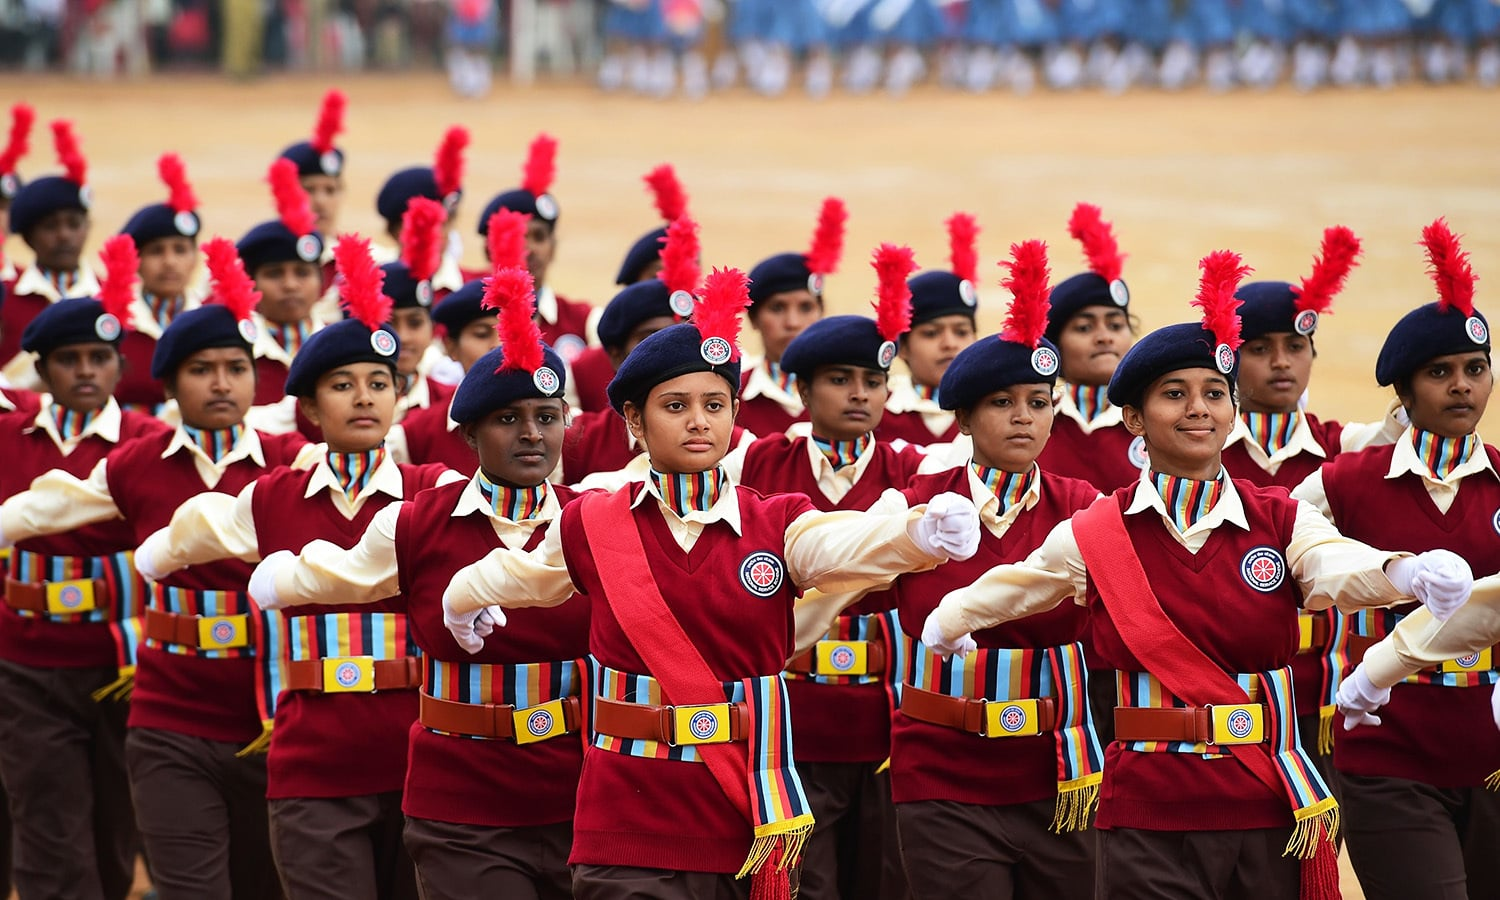 Indian National Service Scheme (NSS) cadets take part in a Republic Day parade in Bangalore.— AFP